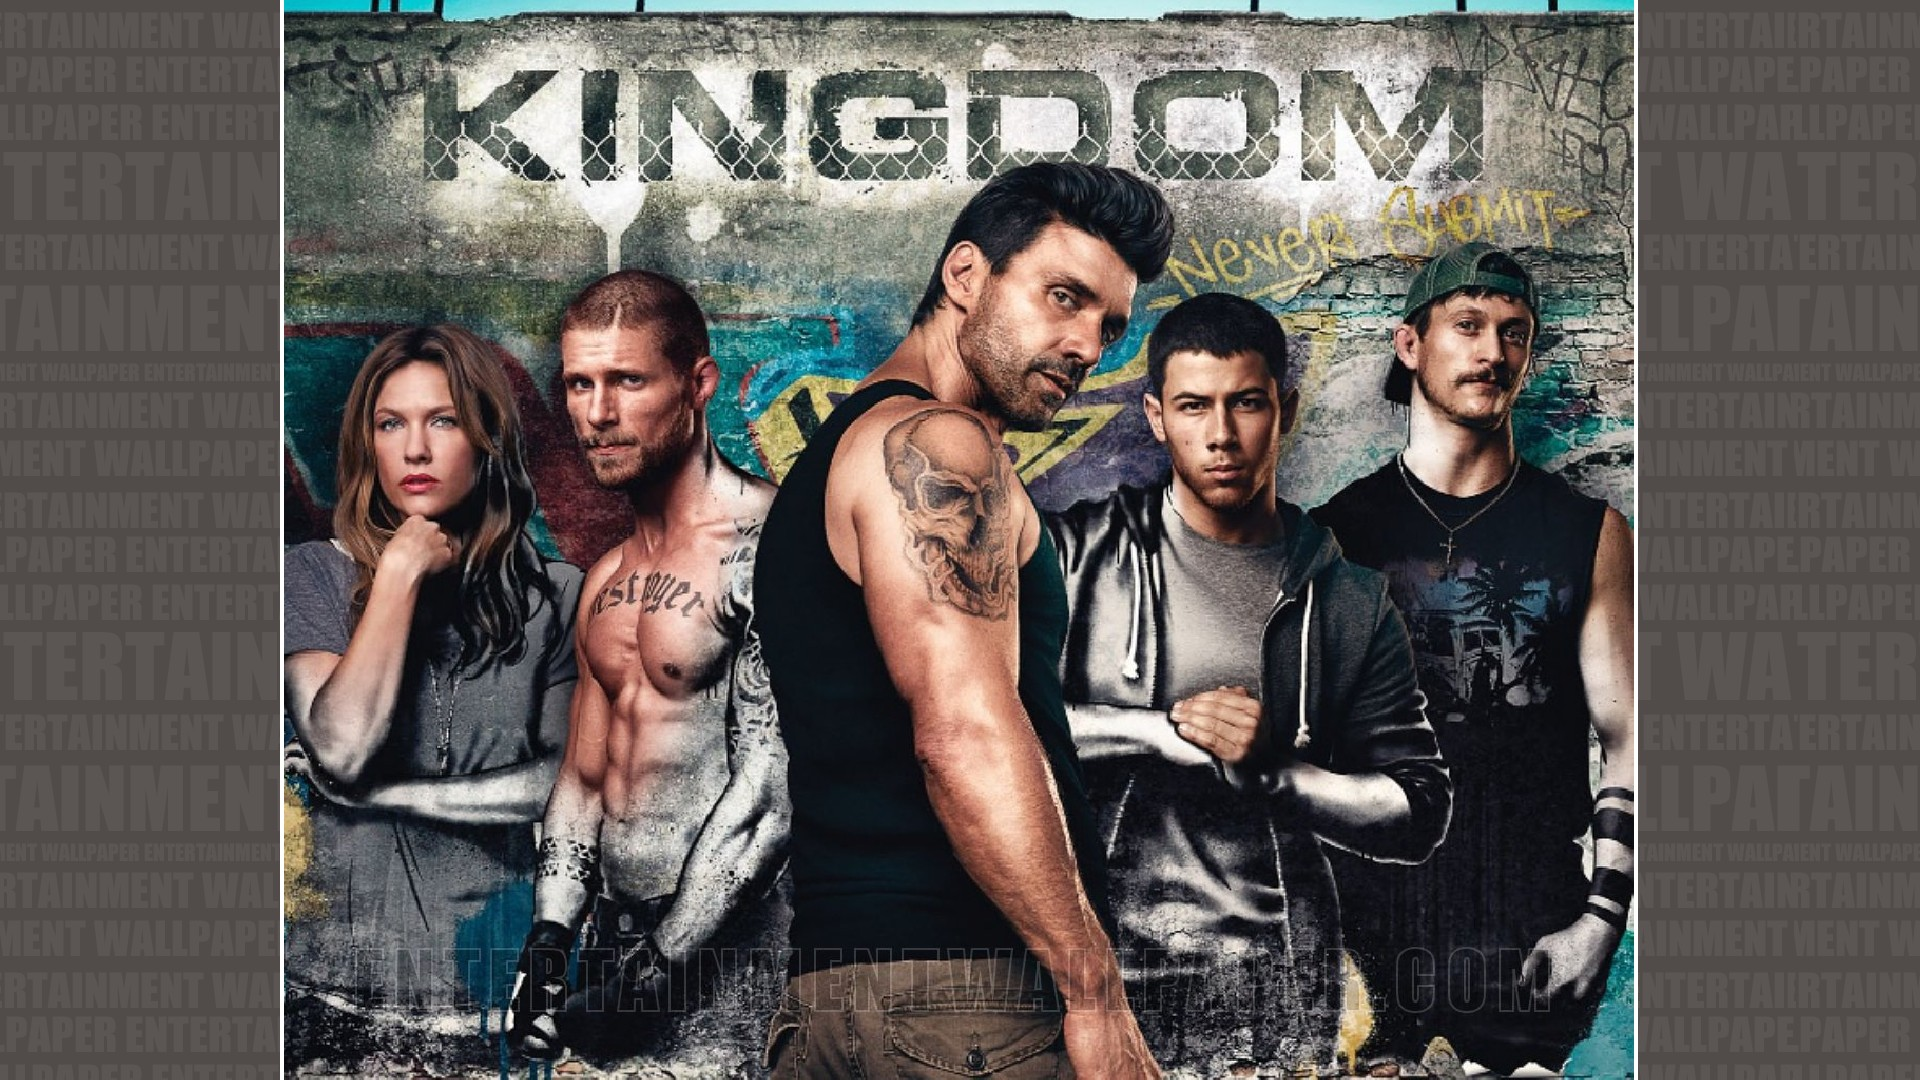 kingdom tv wallpapers high resolution and quality download